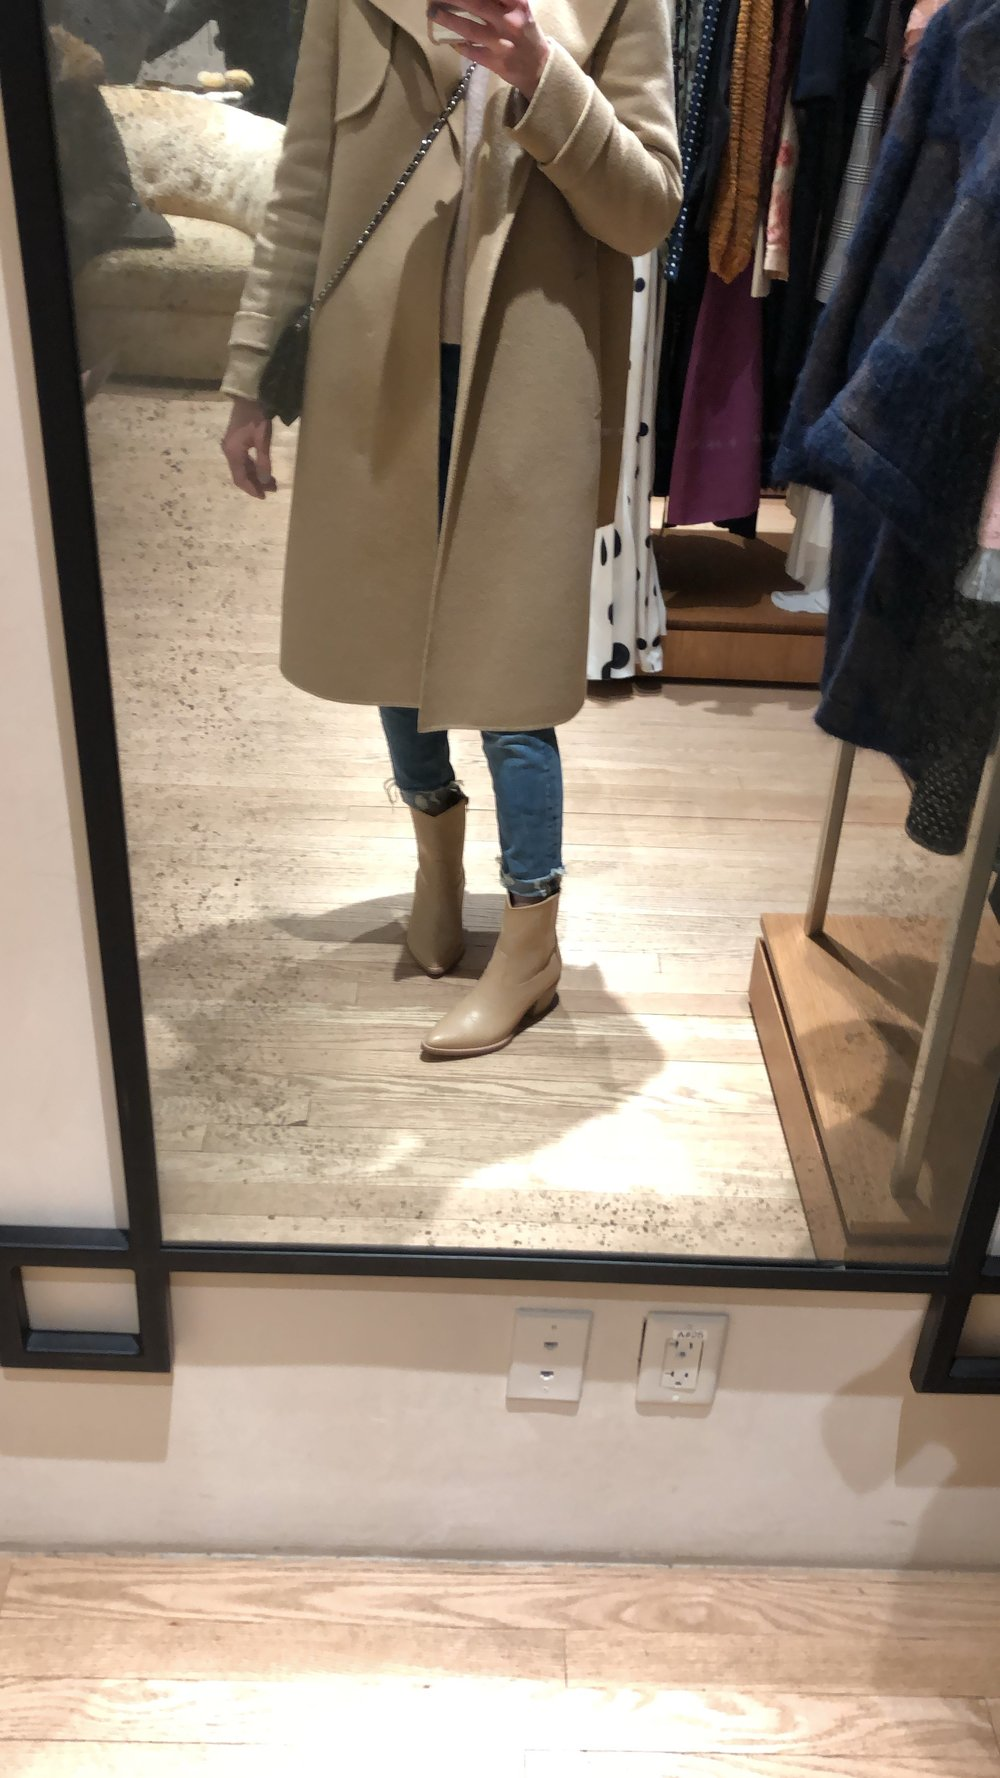 The Real Real - these boots came home with me and I will always remember this little getaway when I put them on. My favorite way to shop on vacation is to go to many stores, observe, and then pick on special thing!